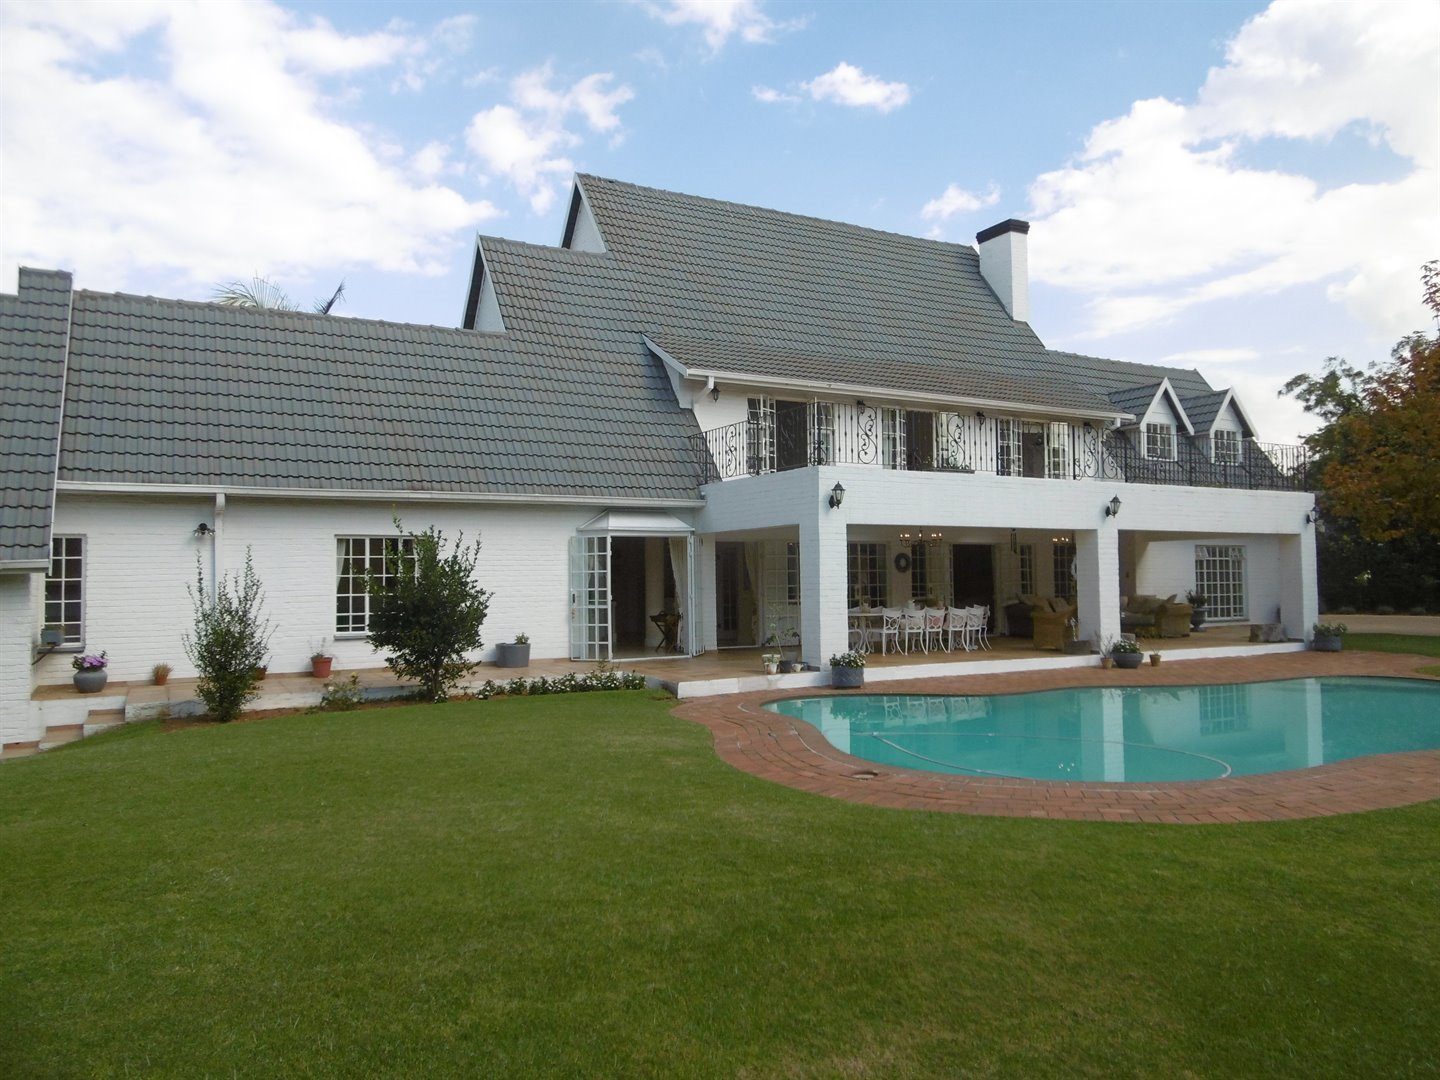 Bryanston & Ext property for sale. Ref No: 13482413. Picture no 1